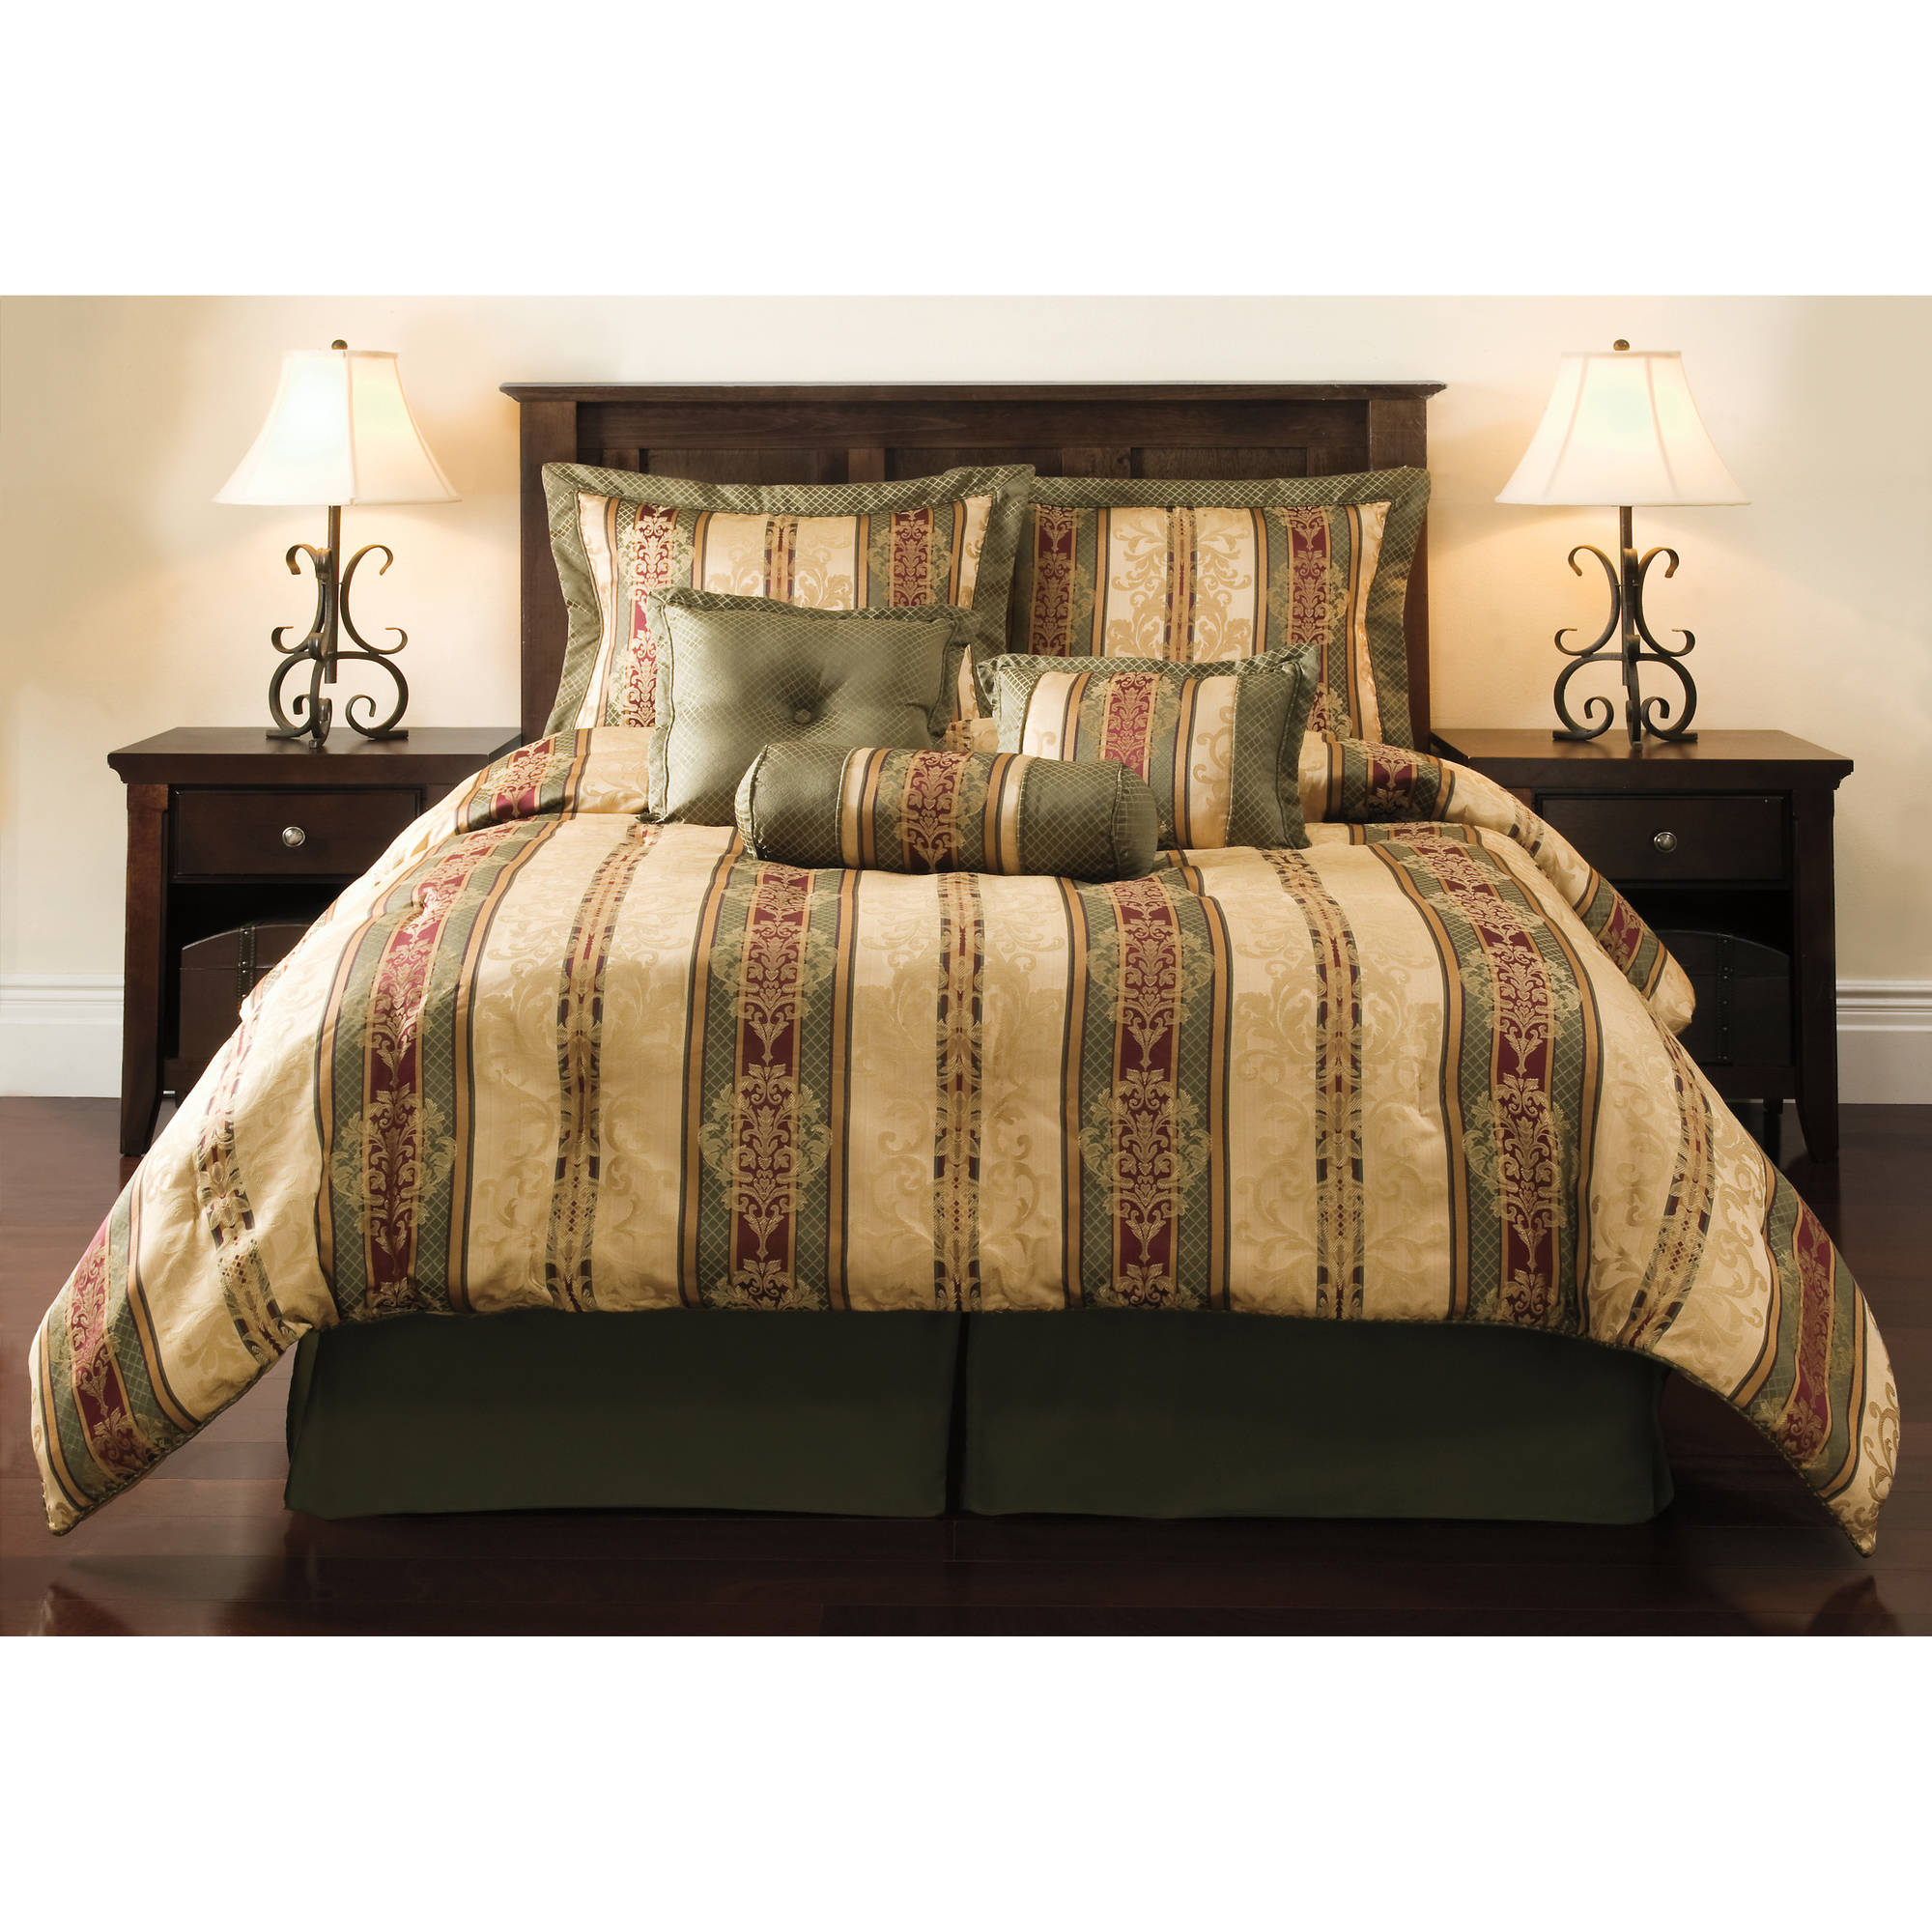 Mainstays 7 Piece Comforter Set, Dakota